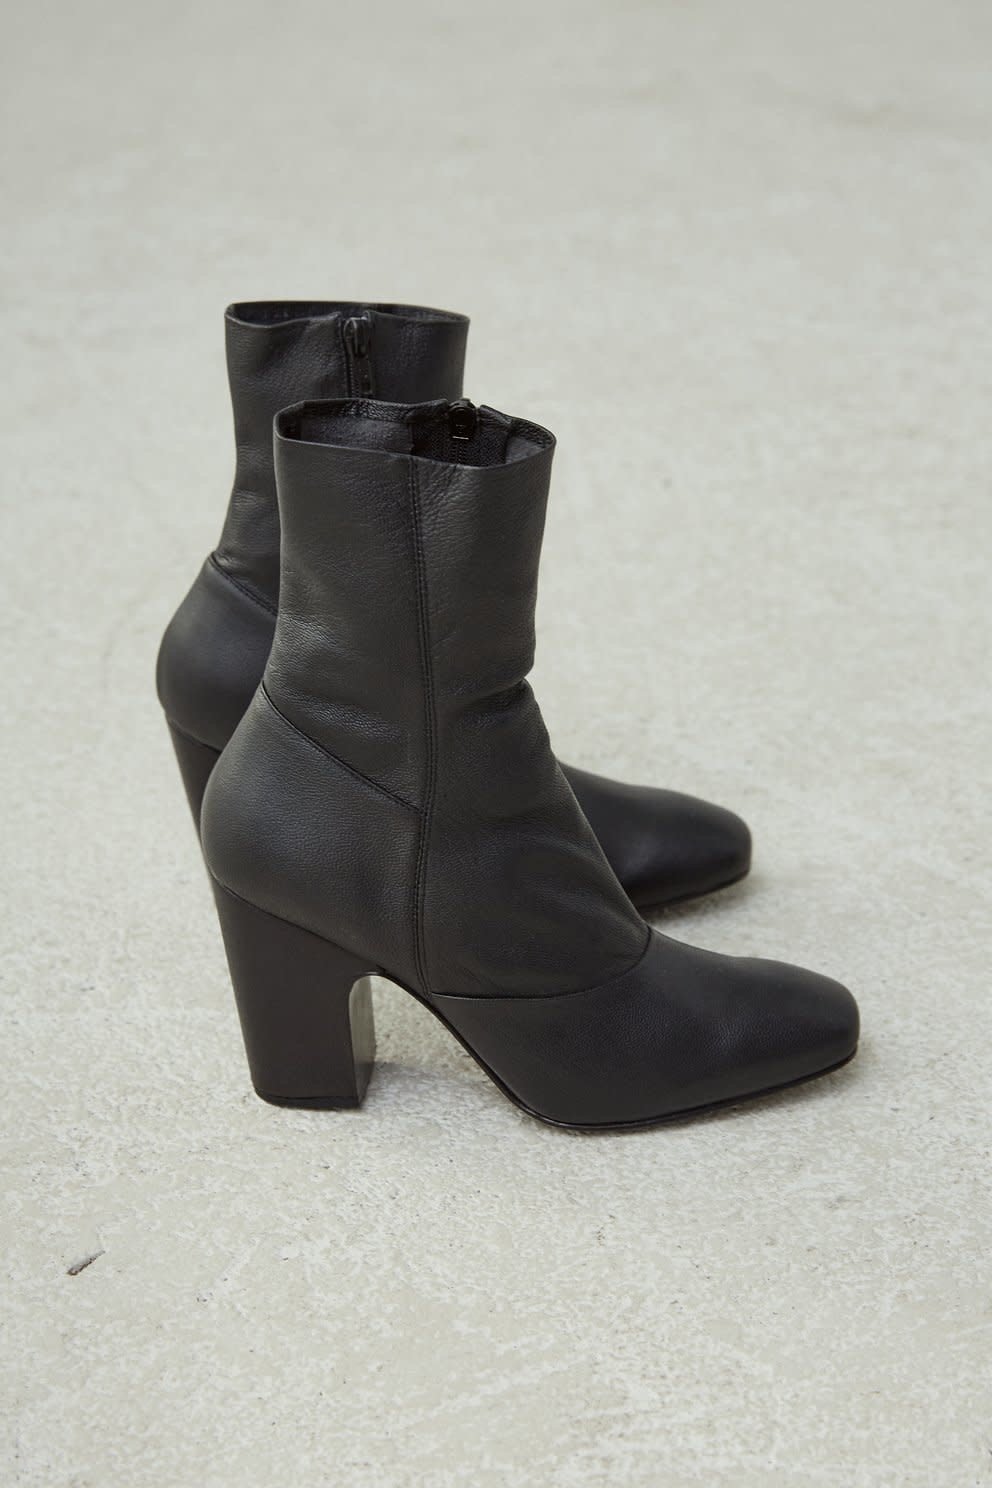 Rachel Comey Rachel Comey Saco Boots in Black Leather